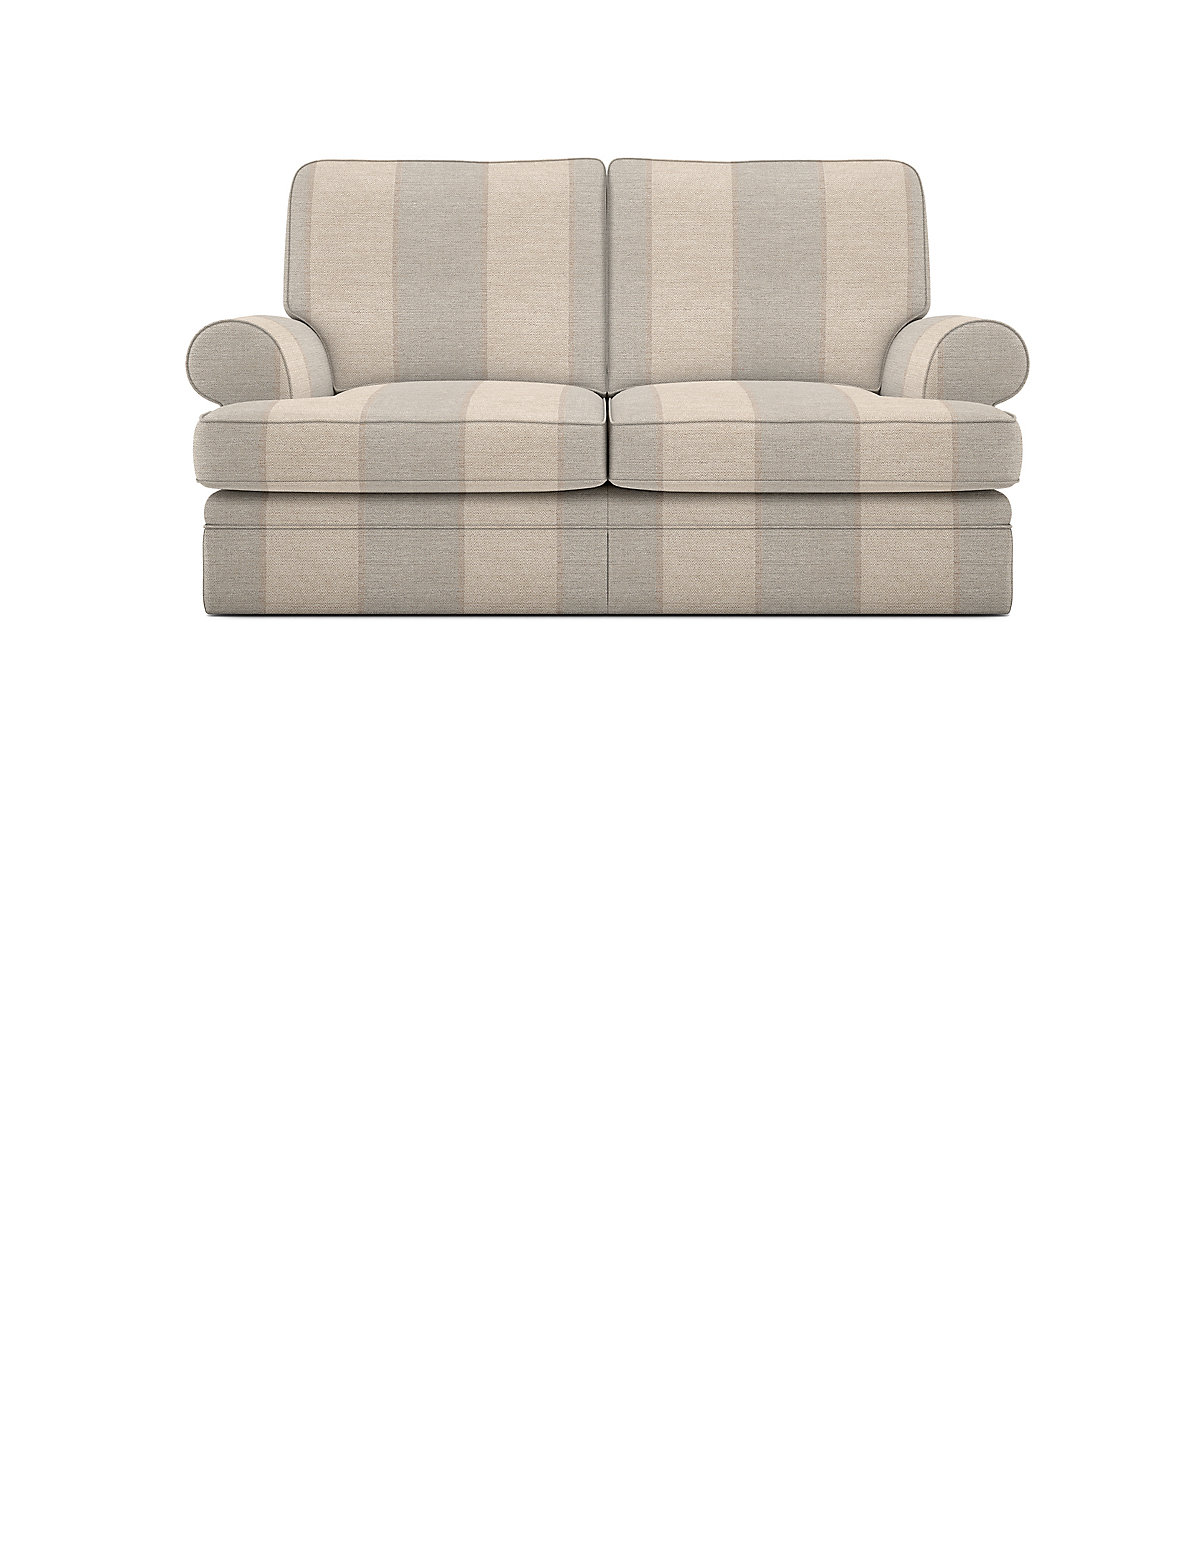 Berkeley Compact Sofa.